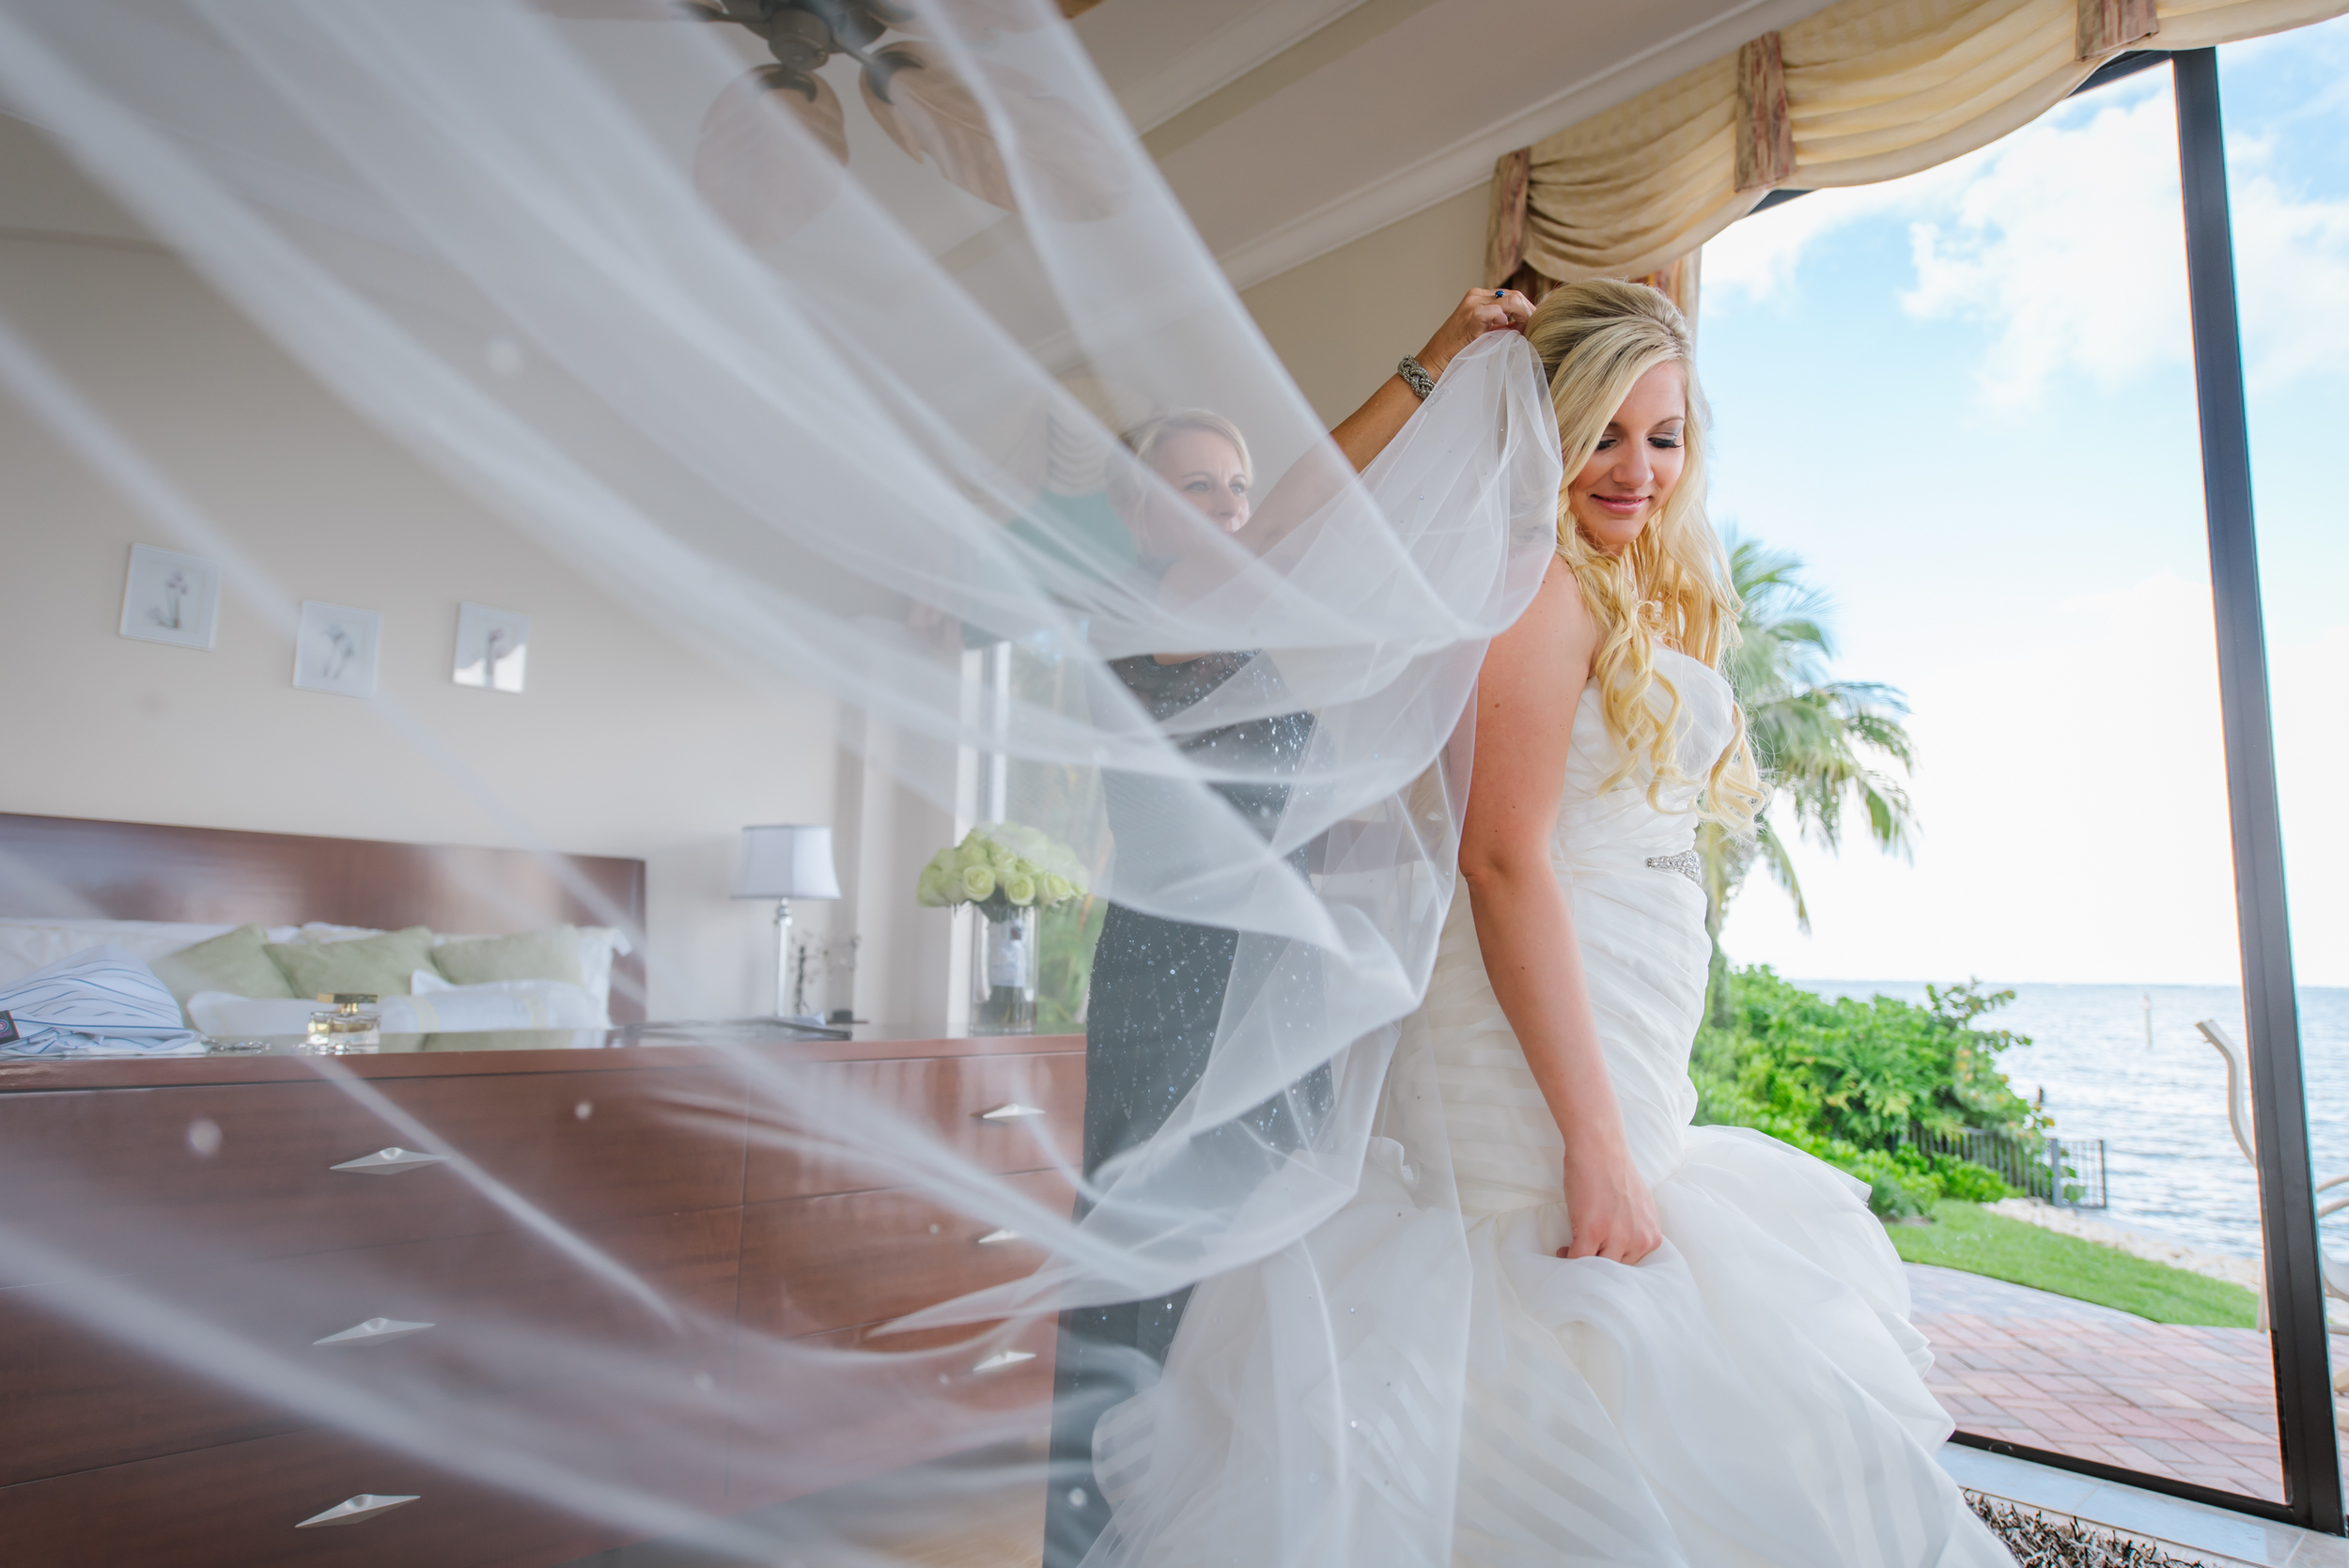 tampa-wedding-photographer-bride-portrait-getting-ready-cathedral-veil